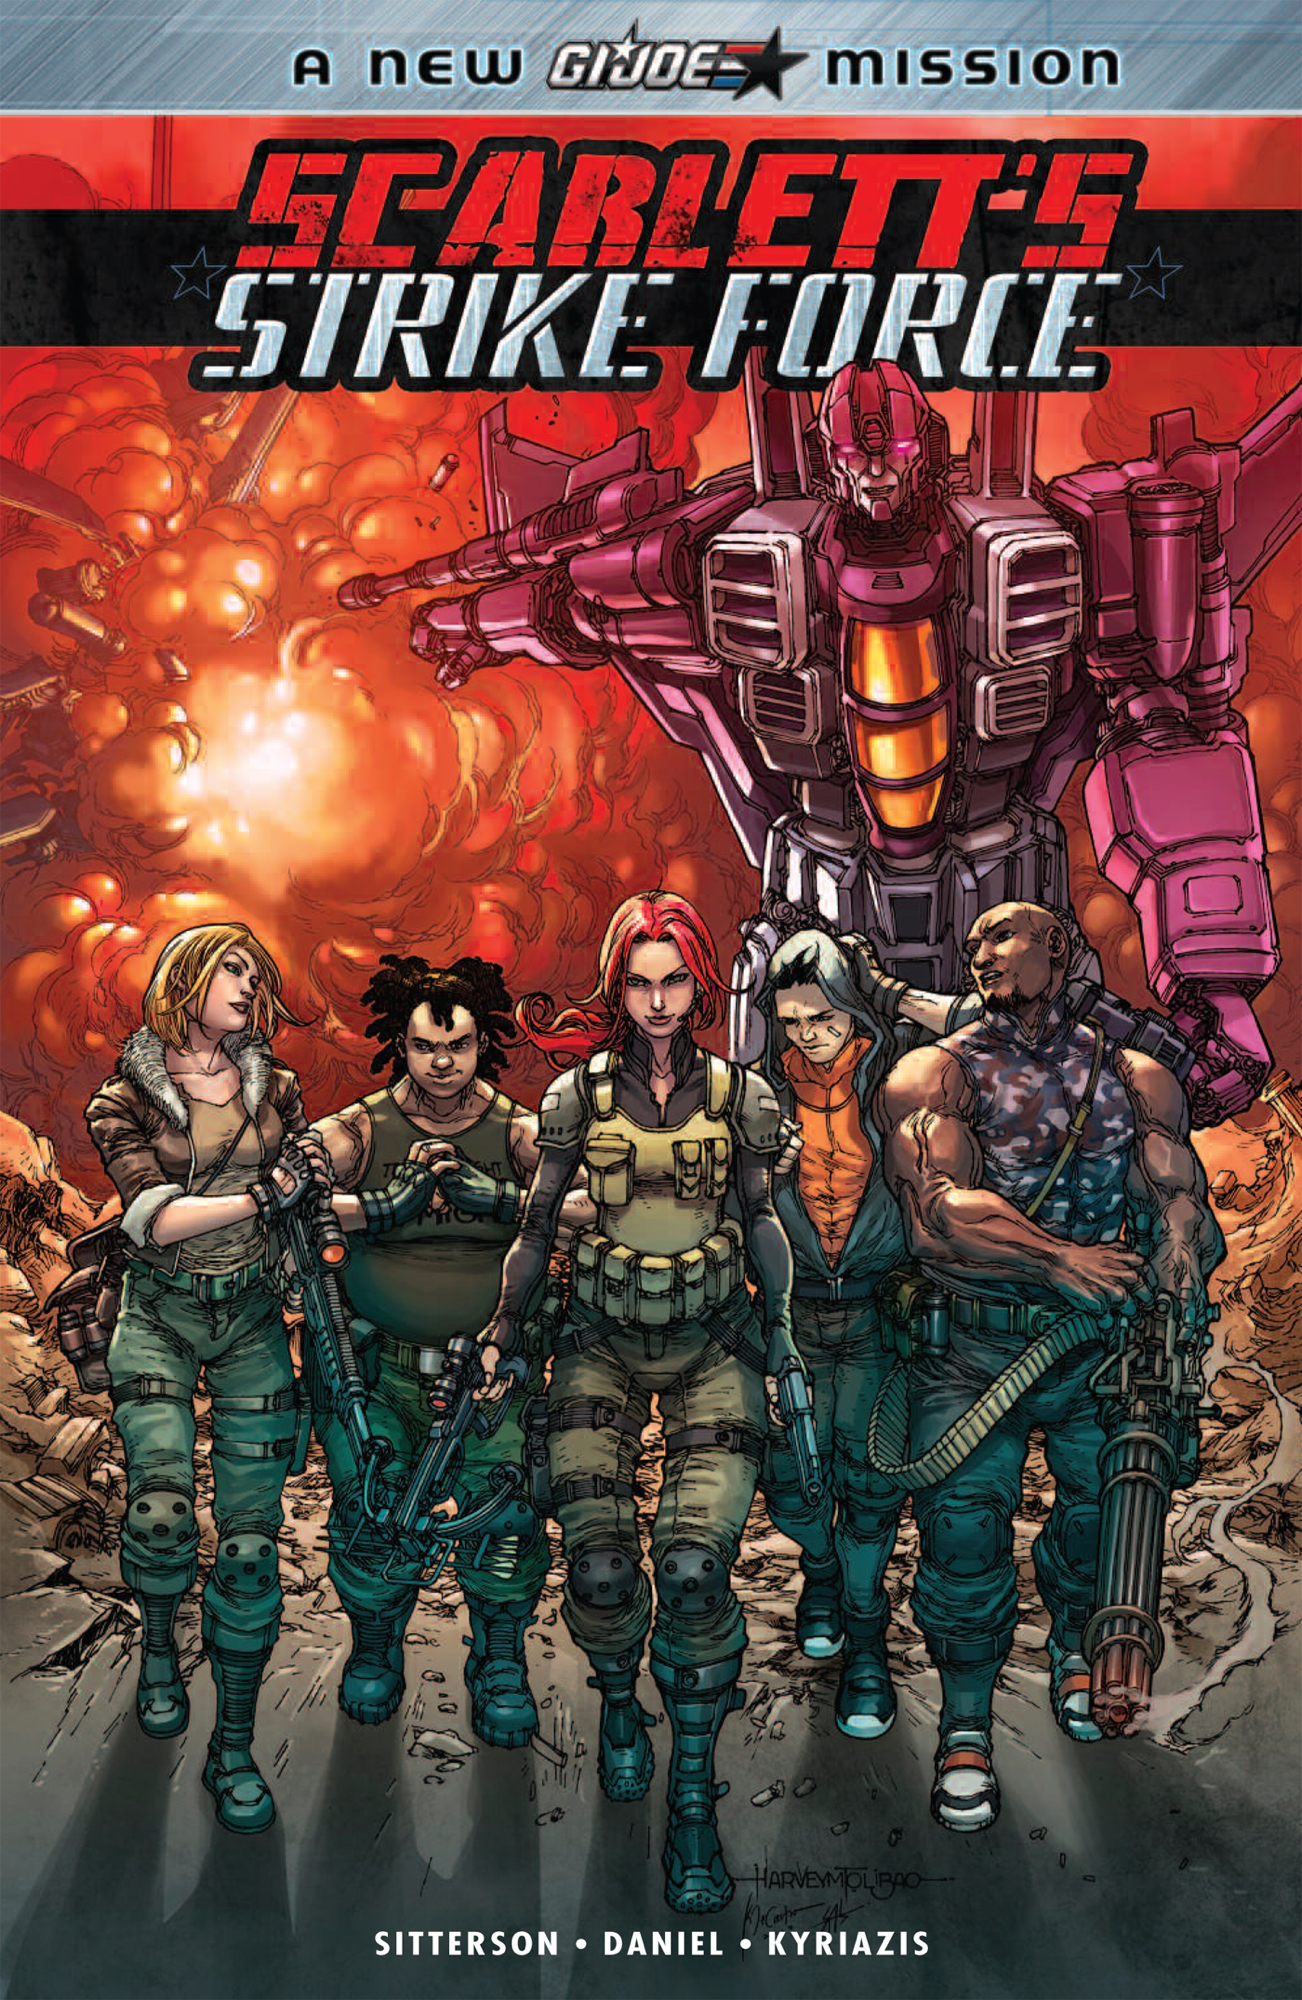 SCARLETTS STRIKE FORCE TP VOL 01